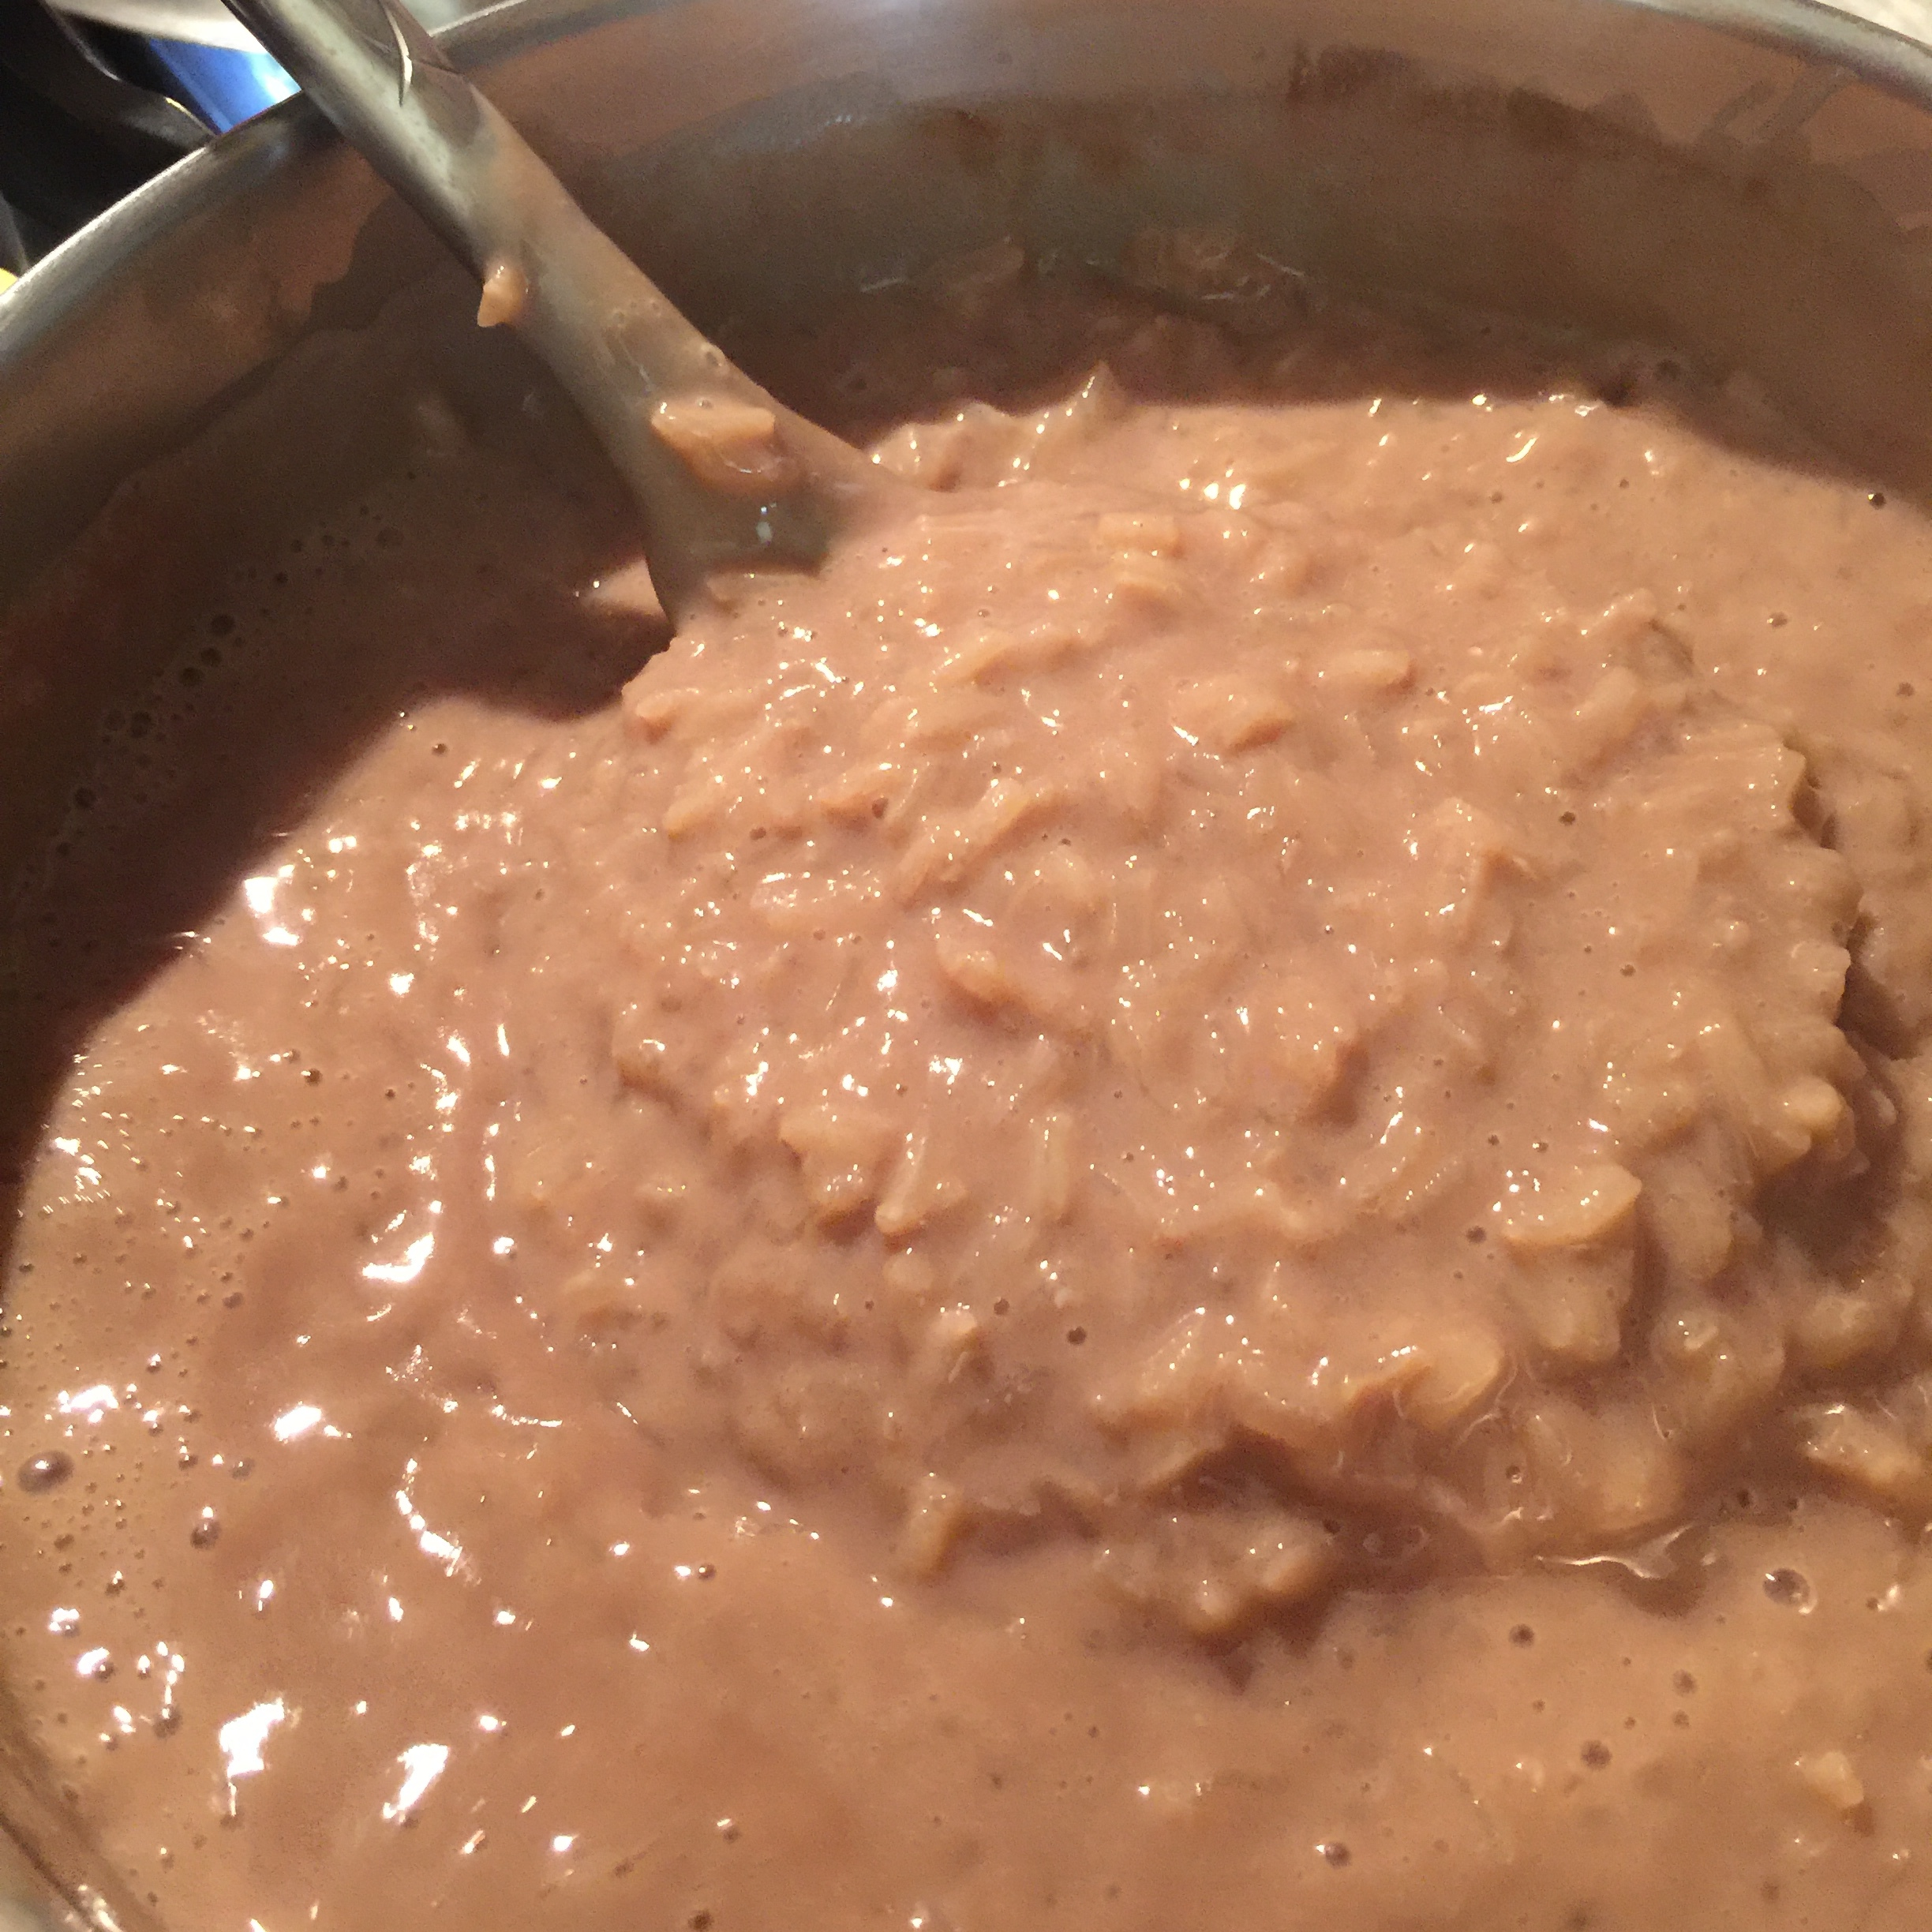 Photo 4: Fully prepared champorado. The rice grains will start to absorb the liquids at it sits.